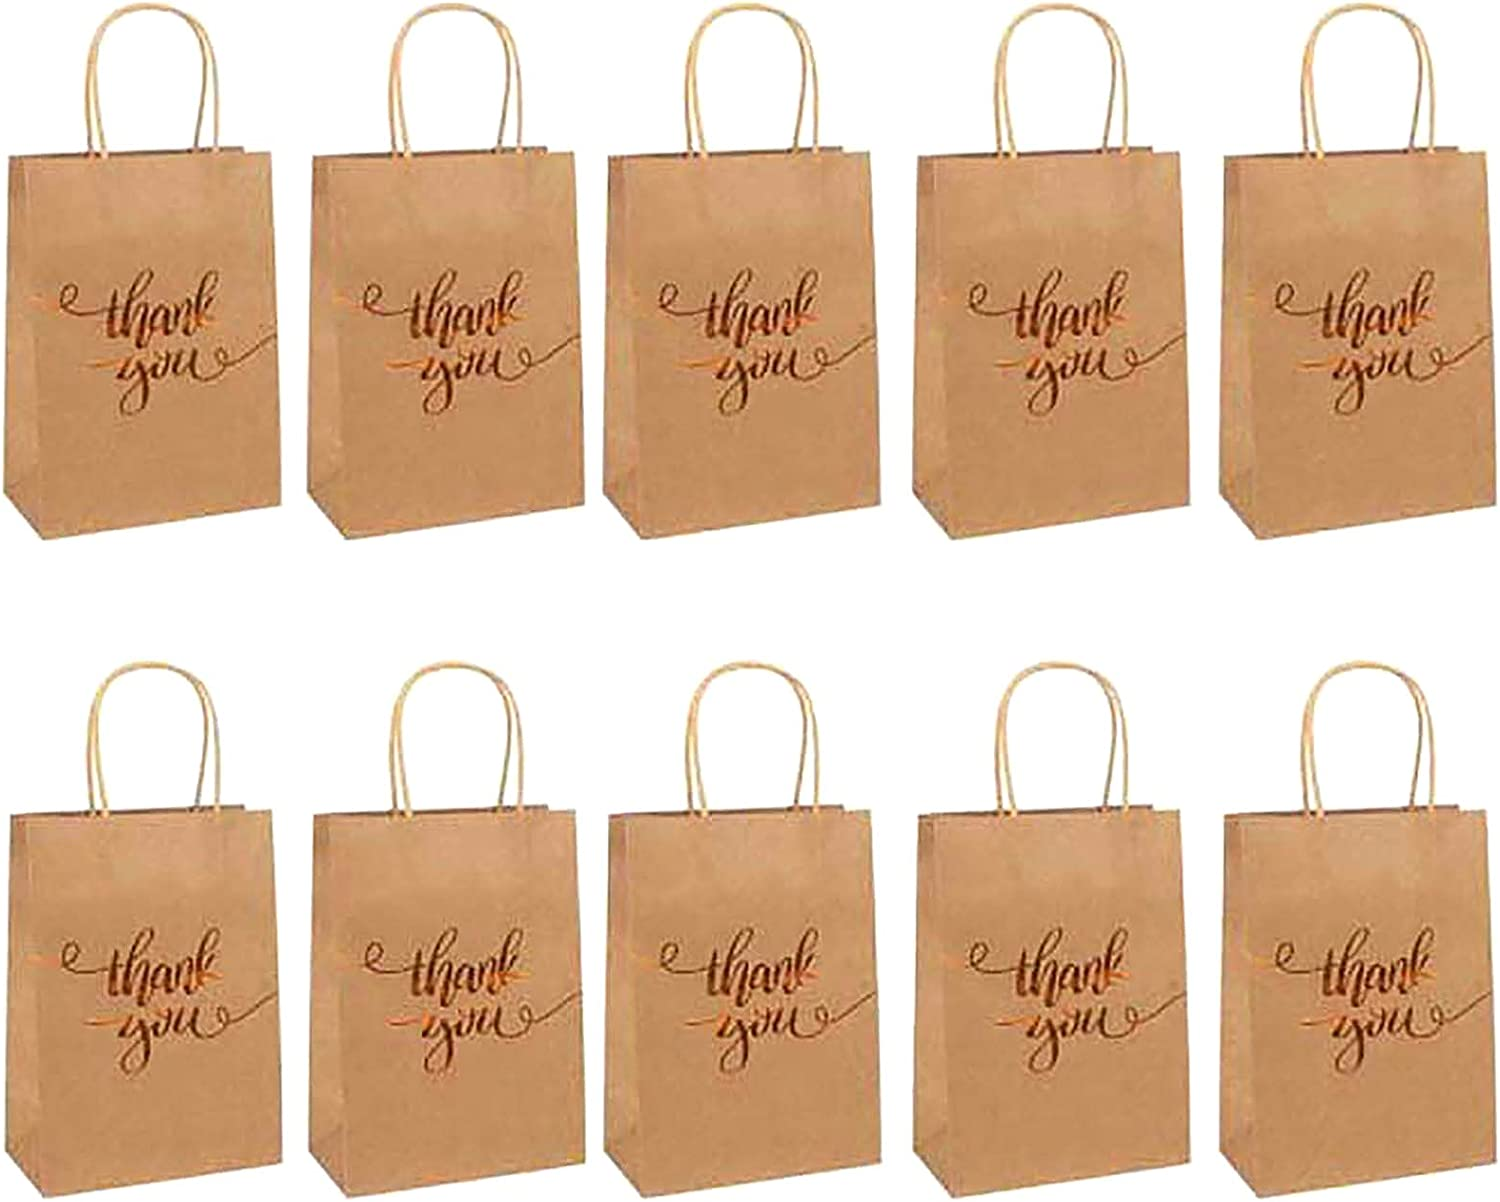 QWDLID 10 Pieces Thank Nippon regular agency You Gift Bags Pape Foil Same day shipping Gold Brown Kraft